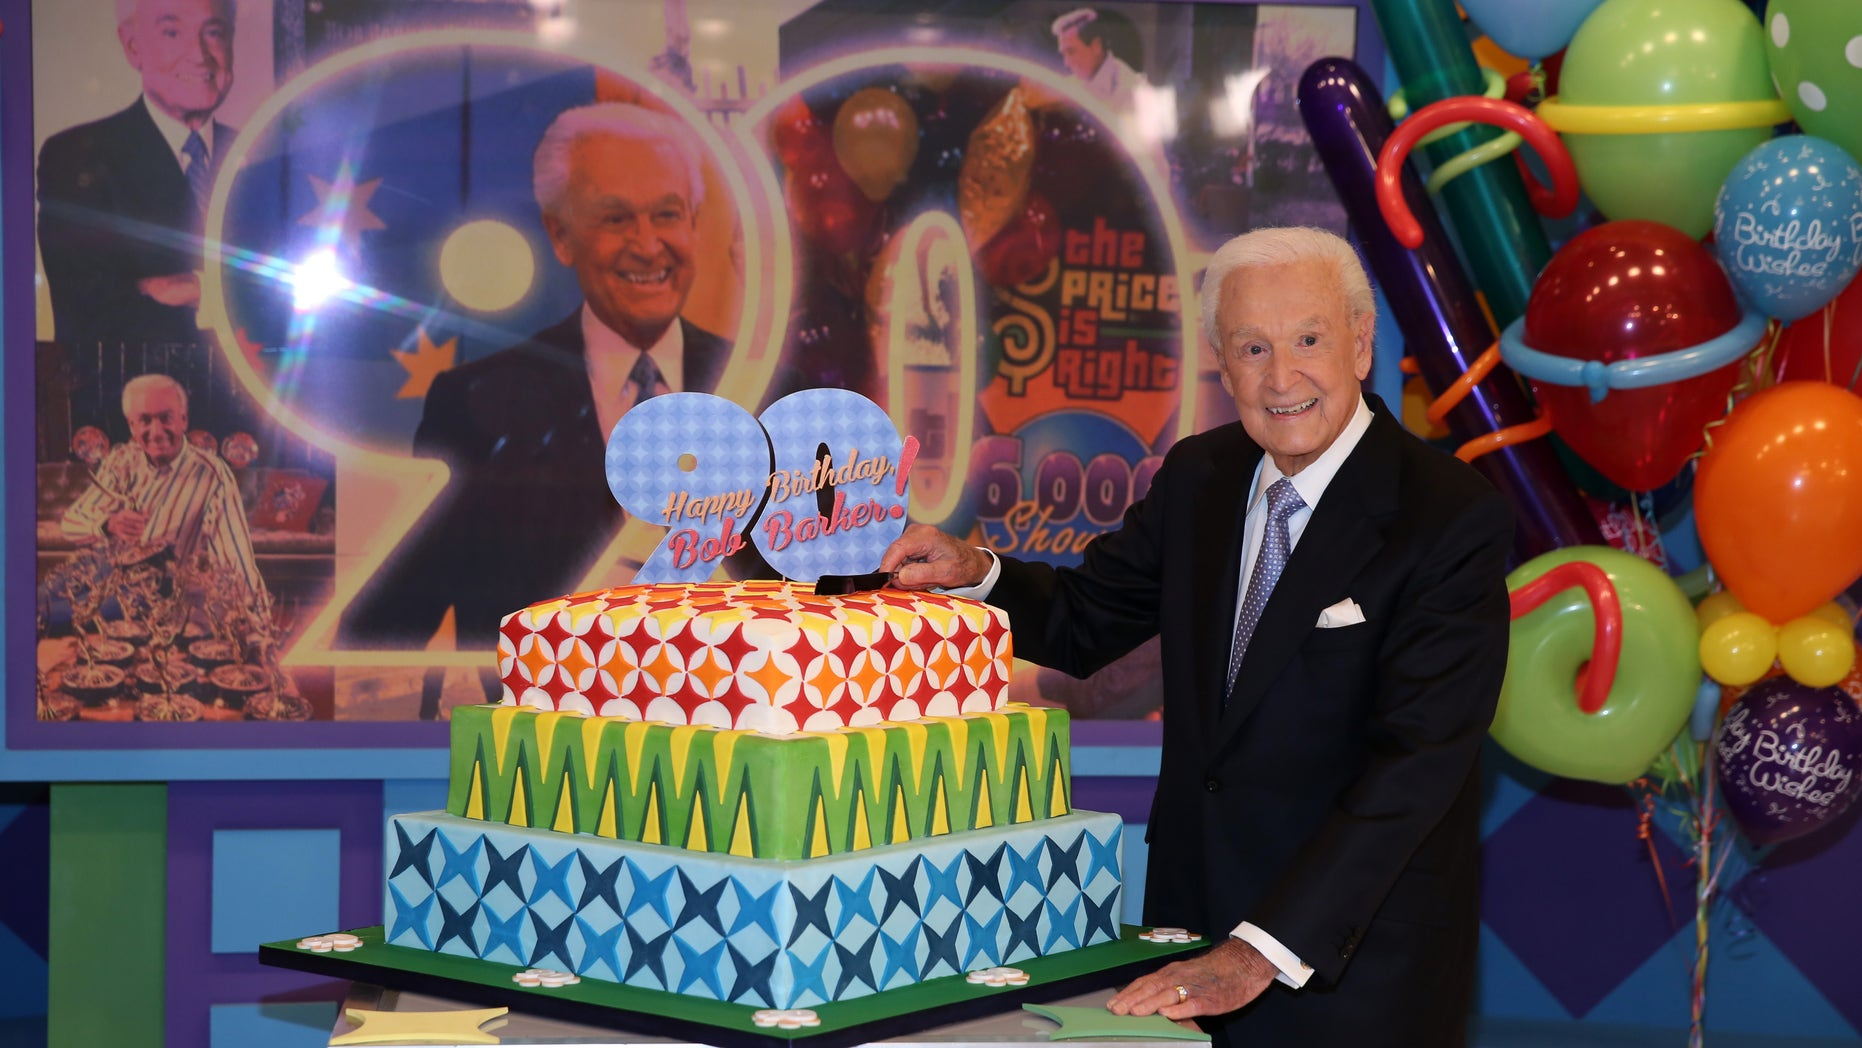 """November 5, 2013.  Bob Barker posing on the set of  """"The Price is Right"""" with a cake celebrating his 90th birthday at CBS Studios in Los Angeles. The veteran game show host, at the helm of The Price is Right from 1972 to 2007, was invited back by current host Drew Carey on Thursday, Dec. 12, to celebrate the milestone birthday."""